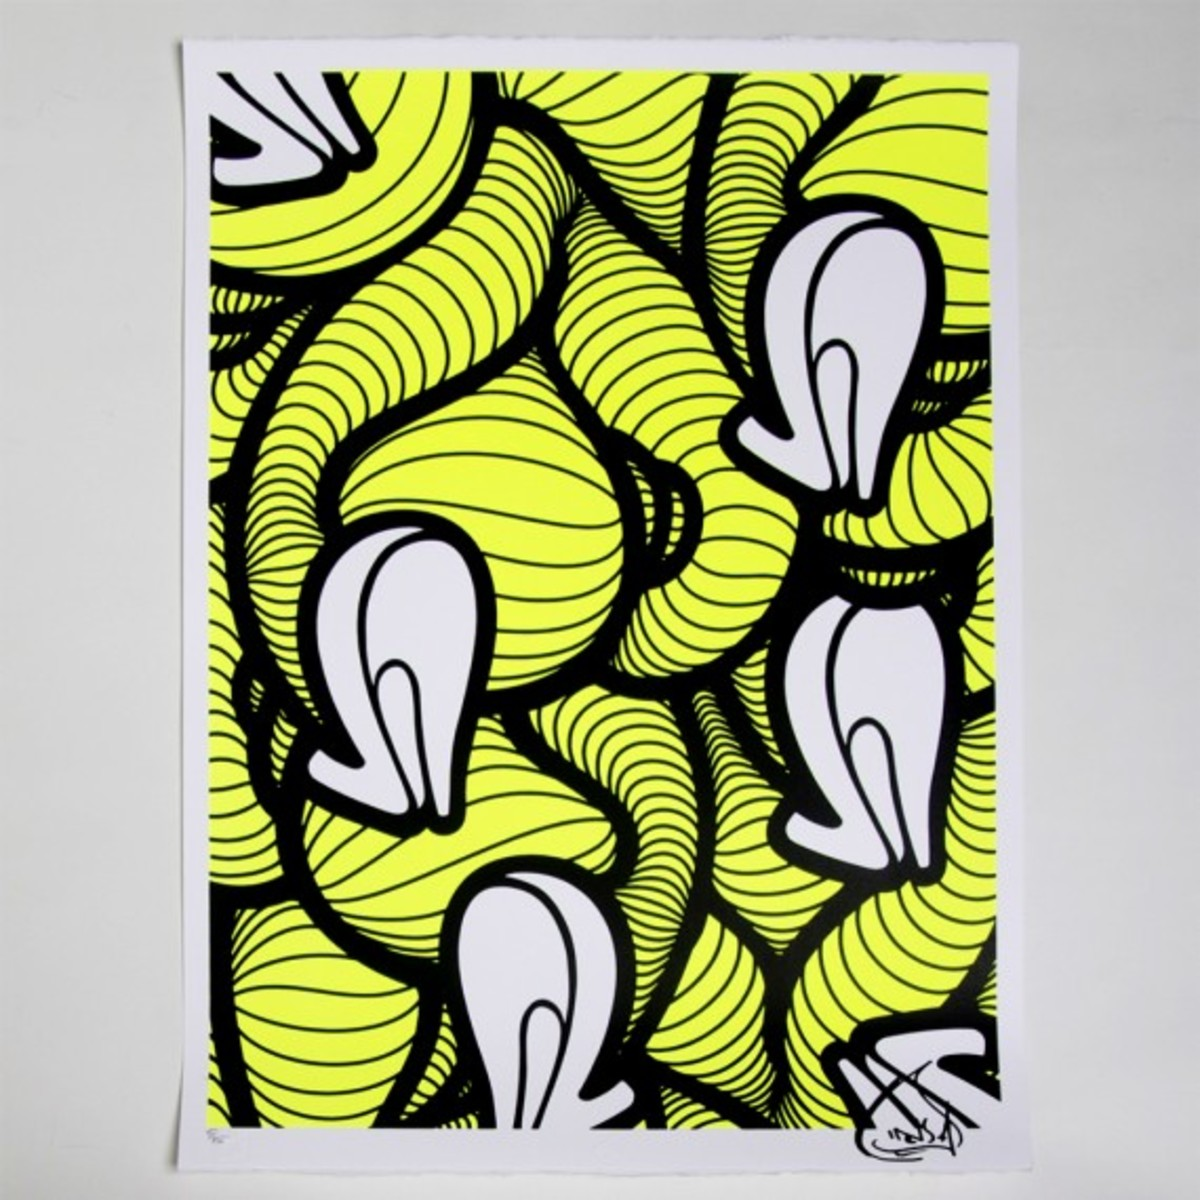 sf-special-edition-prints--neon-yellow-inverted